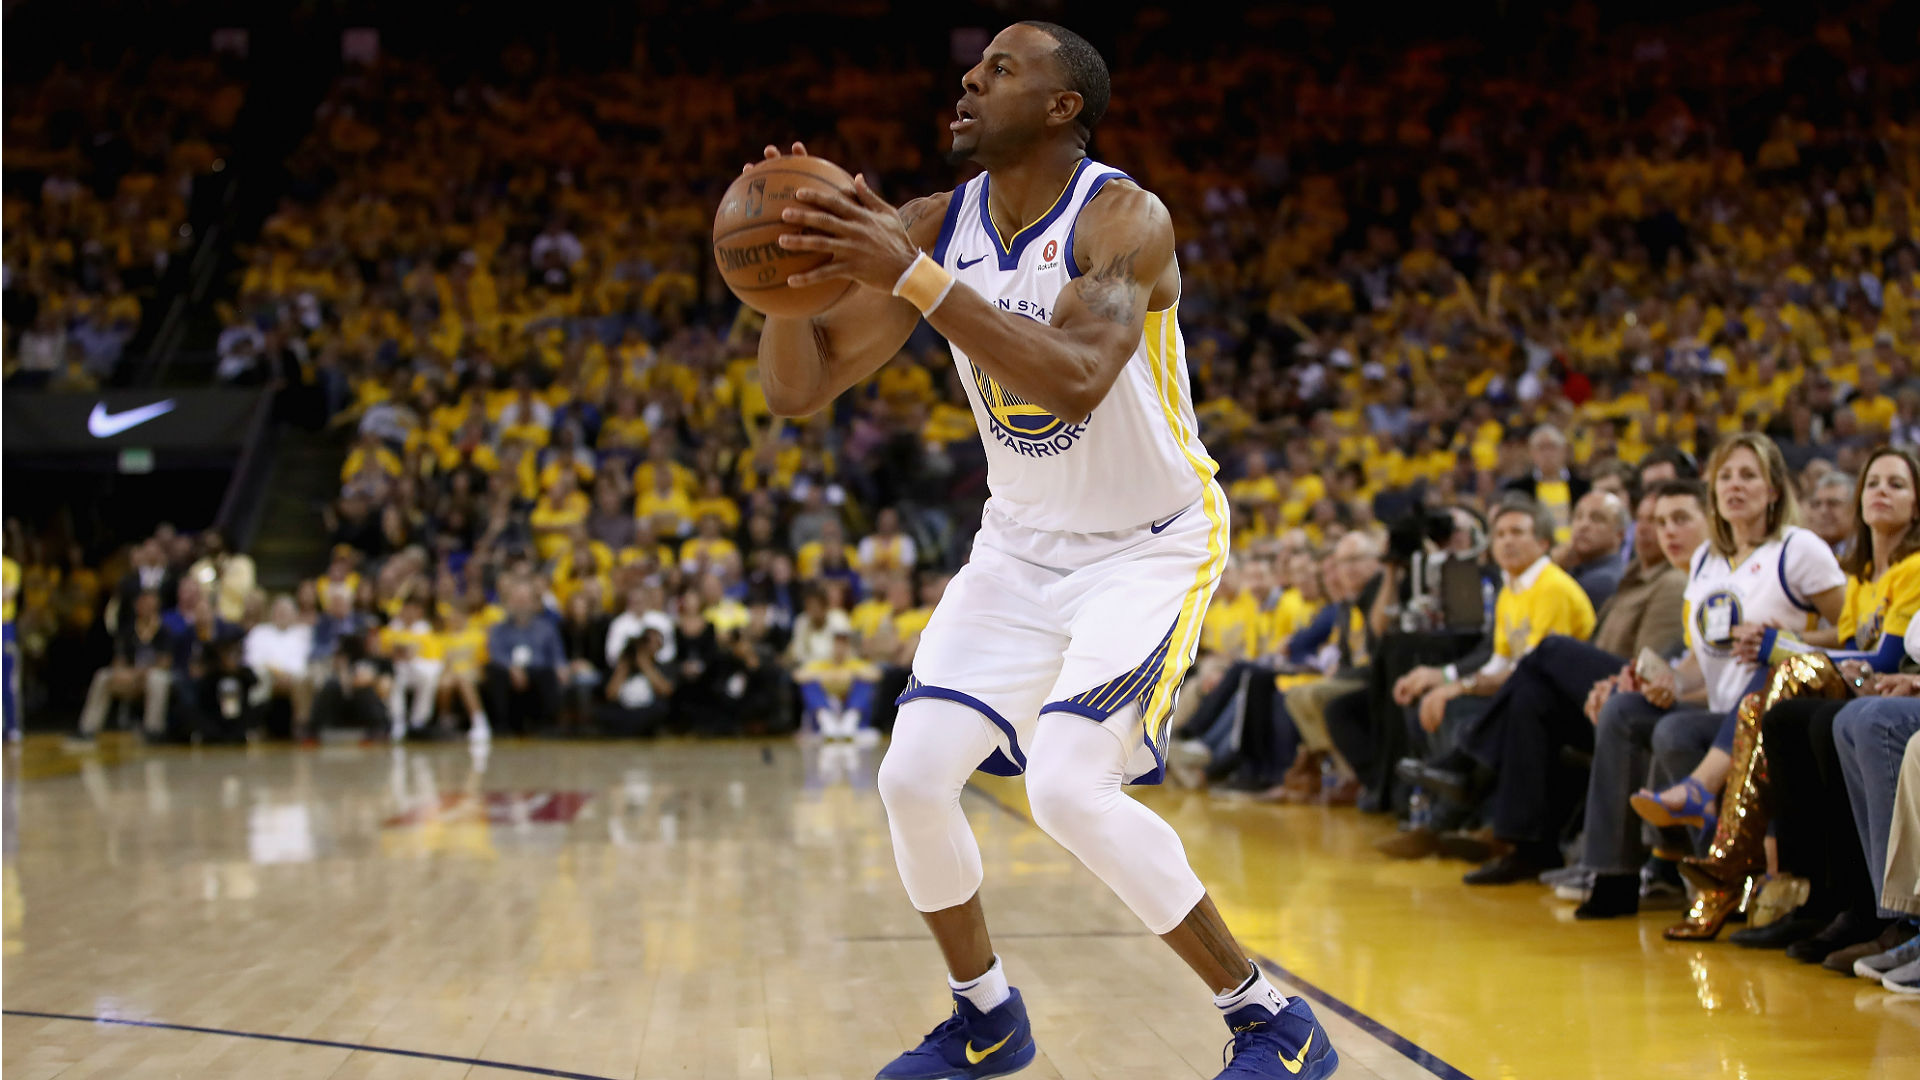 Andre Iguodala of Golden State Warriors pain-free, eyes Finals return